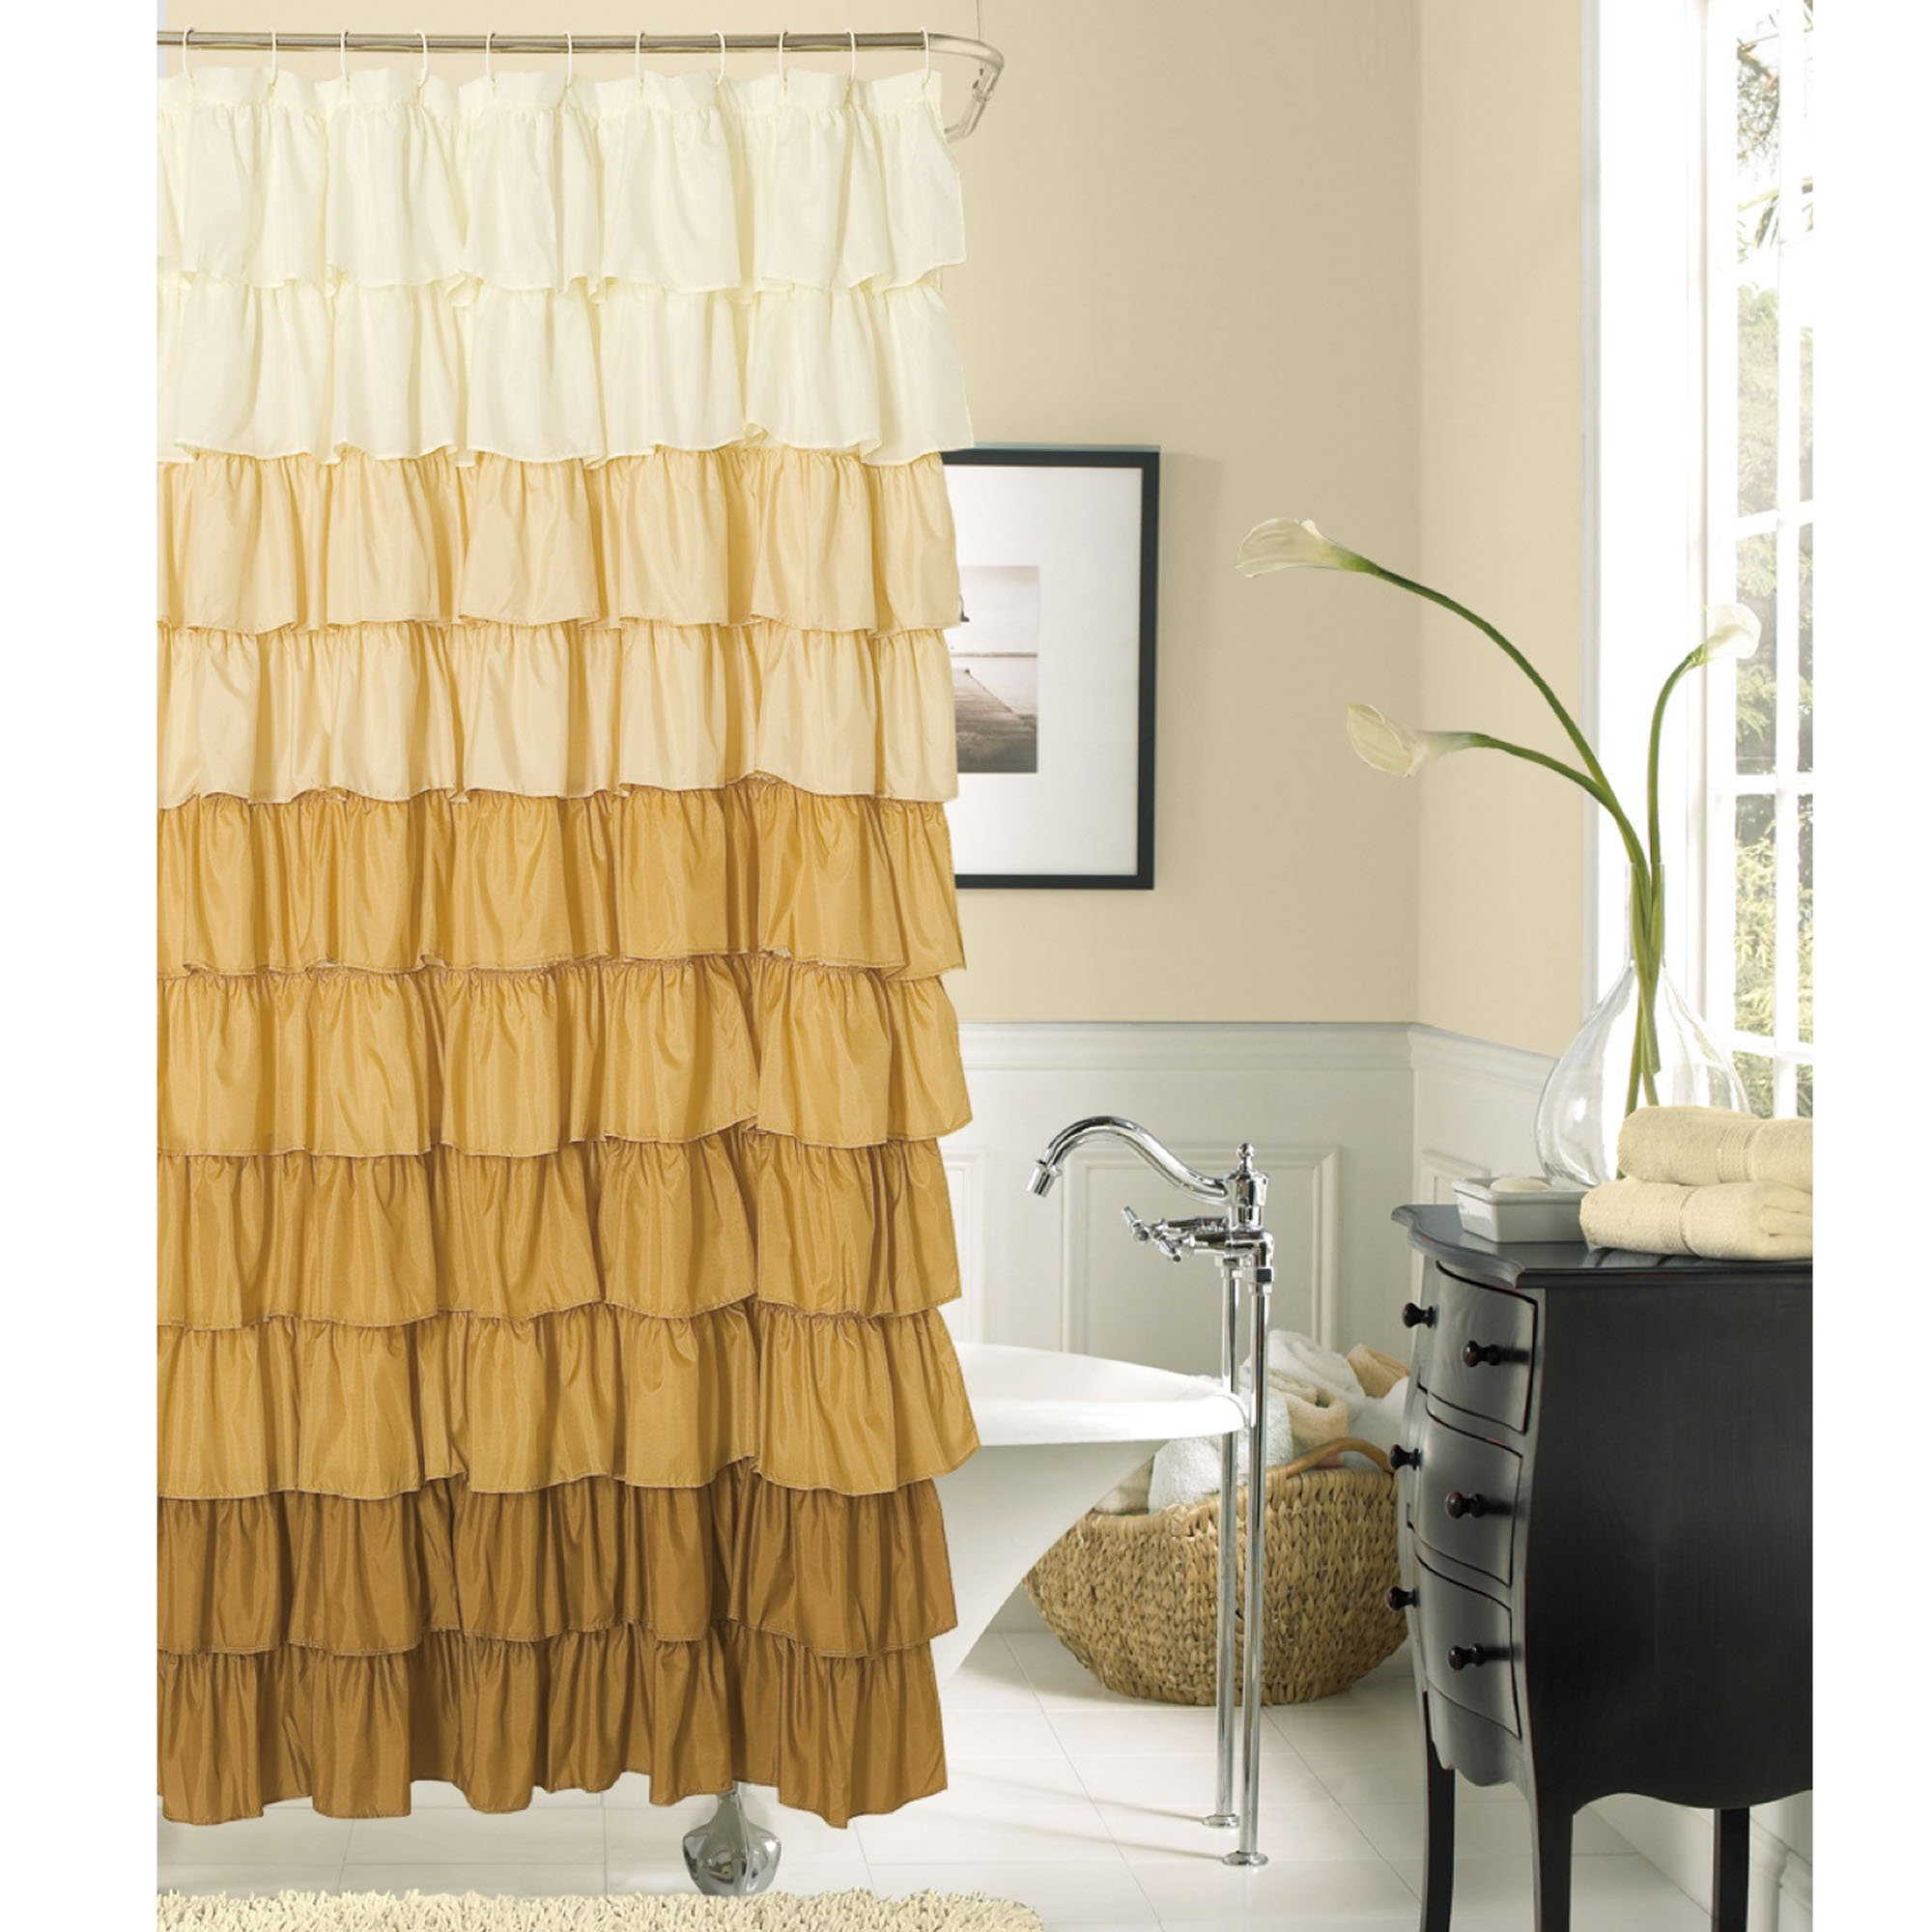 Nickbarronco 100 Black White And Gold Shower Curtain Images intended for dimensions 2000 X 2000